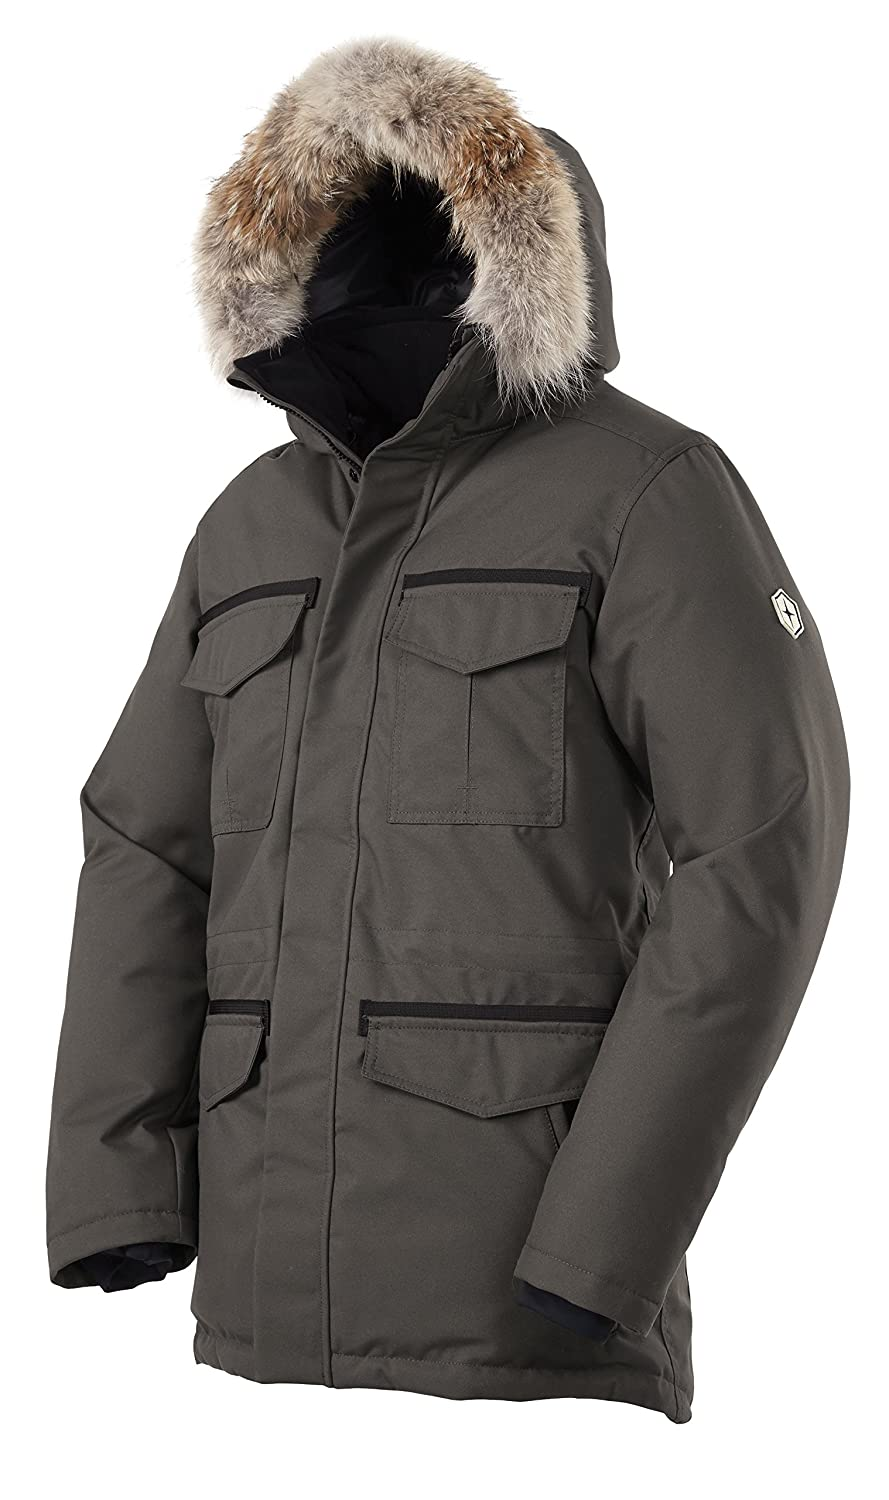 quartz nature parka vs canada goose